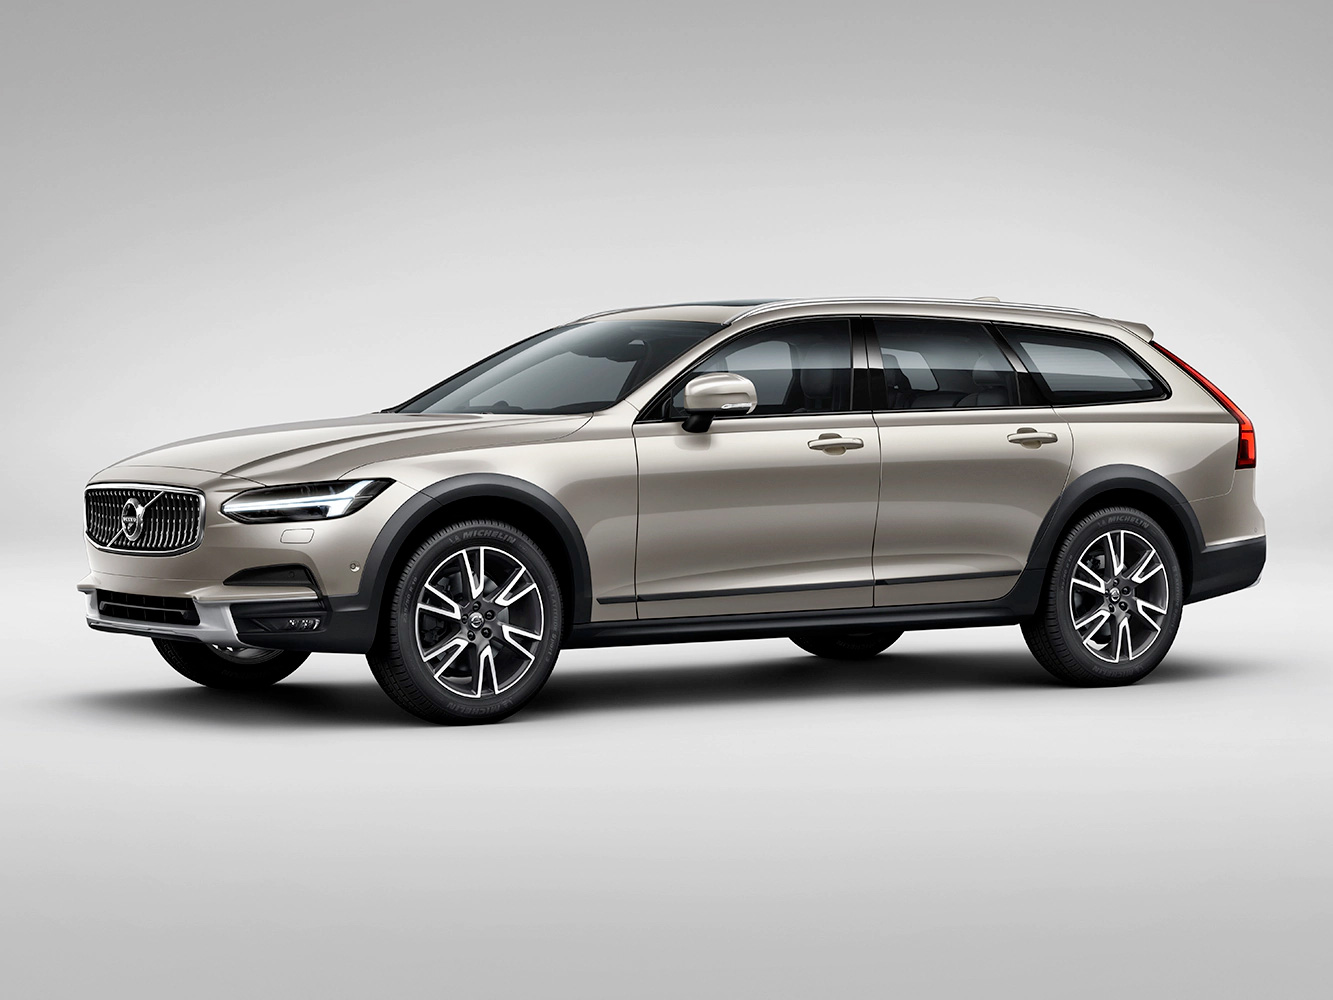 VOL-dealerwebsite-MY19-V90-crosscountry